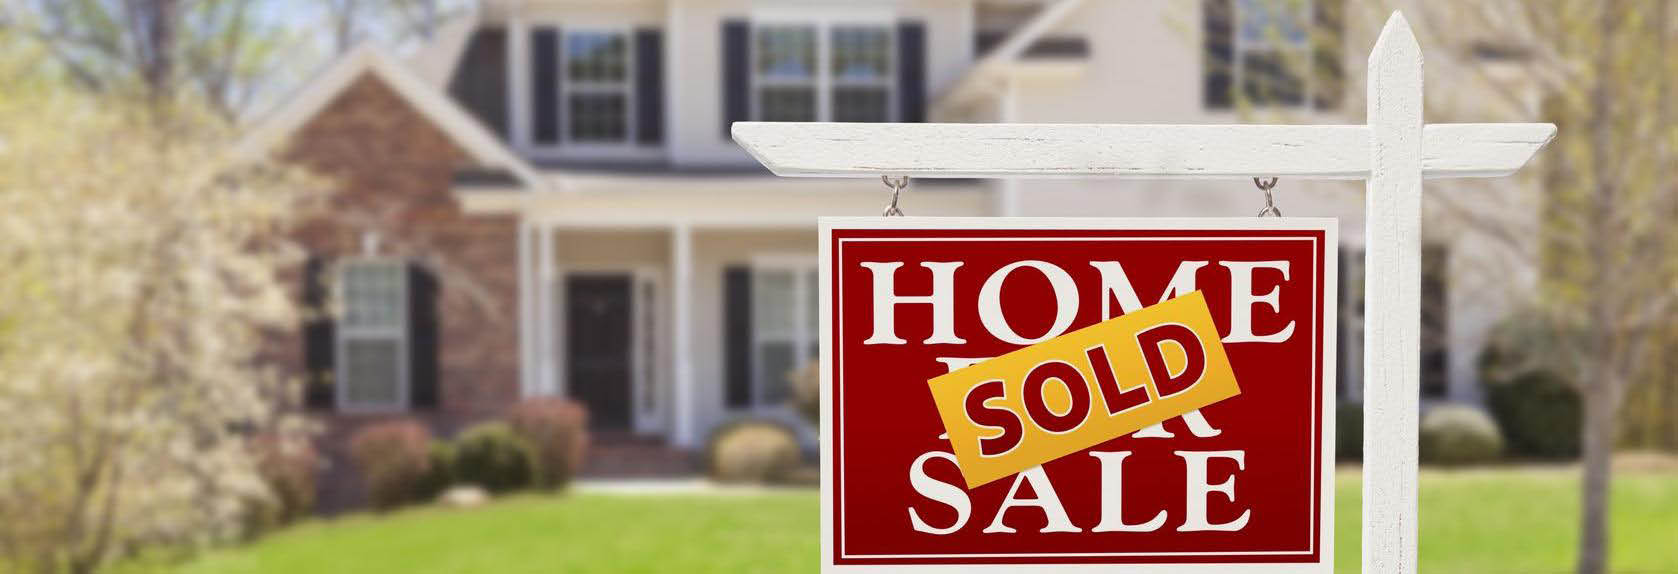 realtor near me  save money buying home make money selling your home